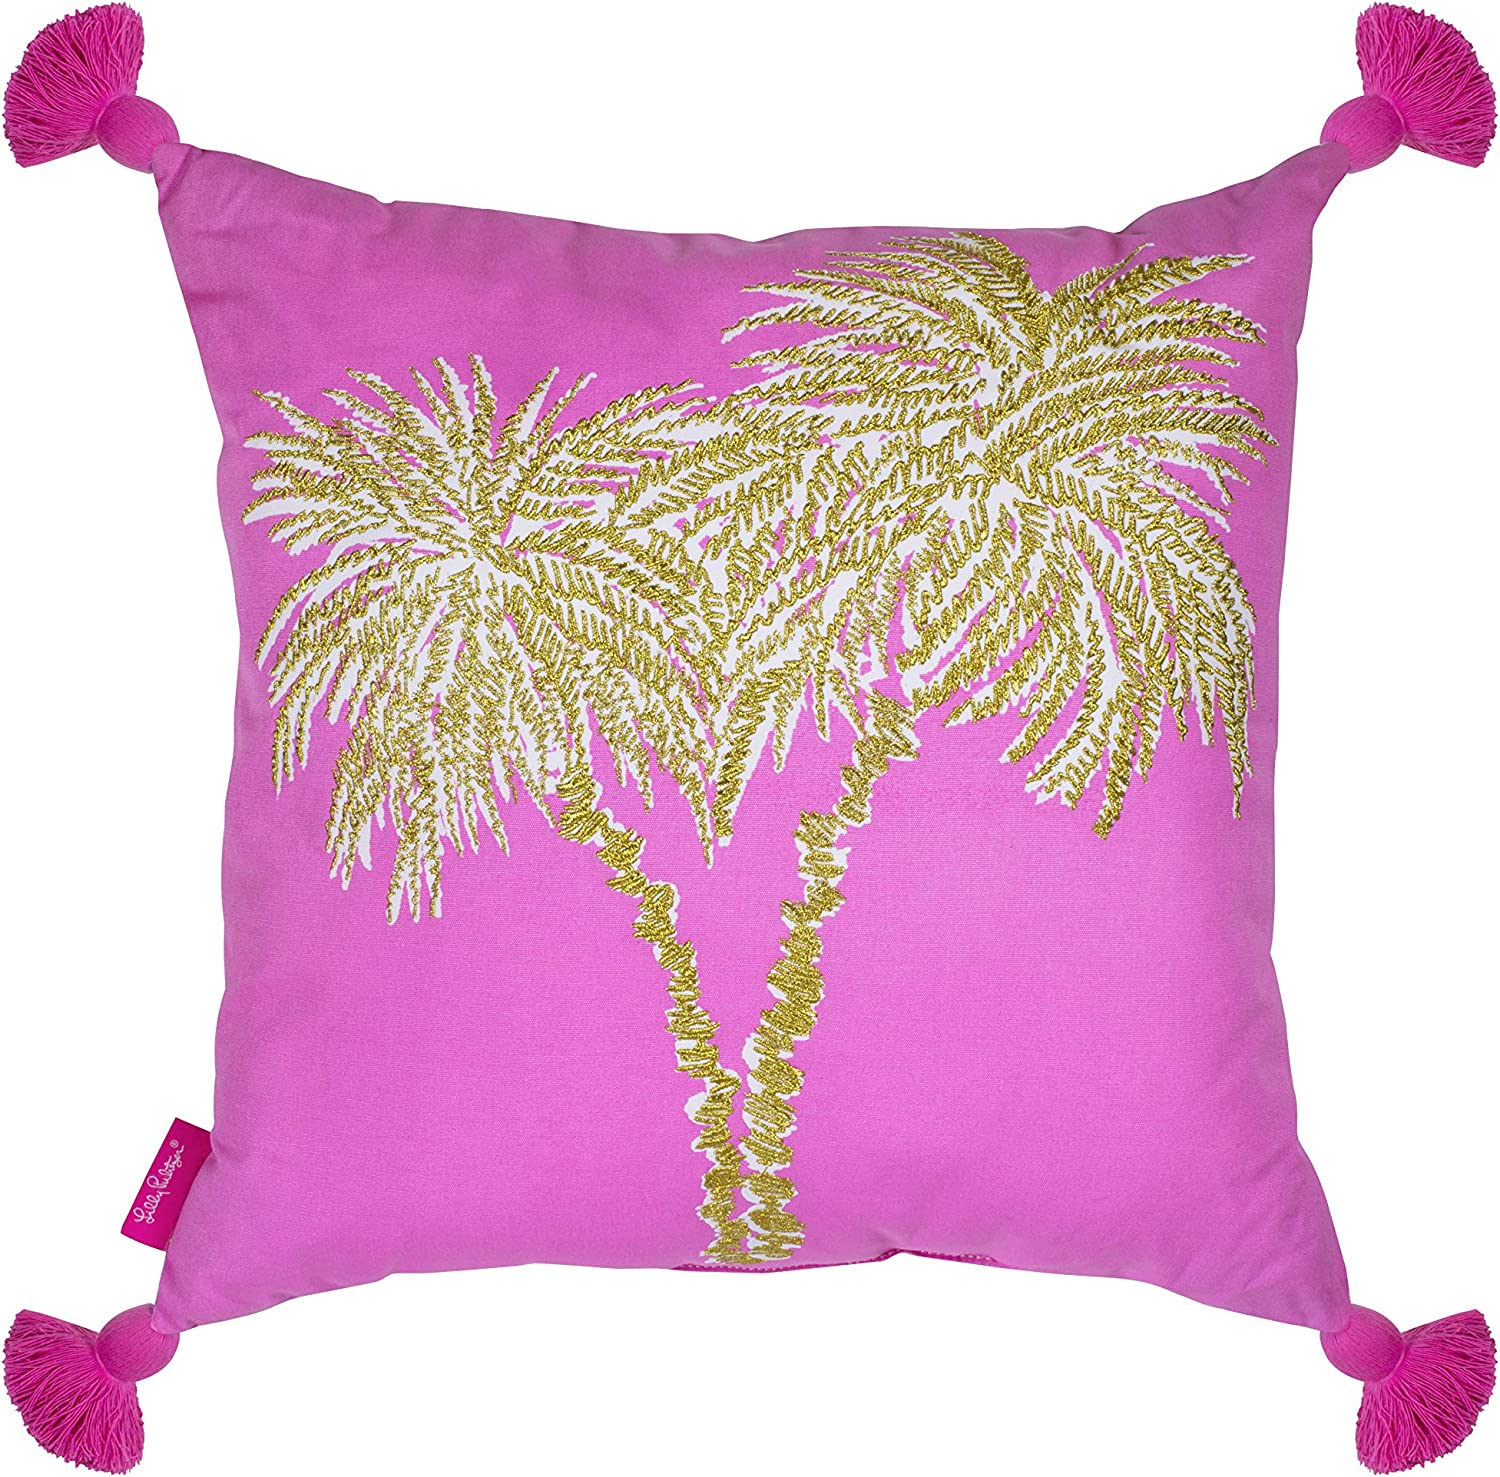 Lilly Pulitzer Indoor Outdoor Large Decorative Pillow, Palms